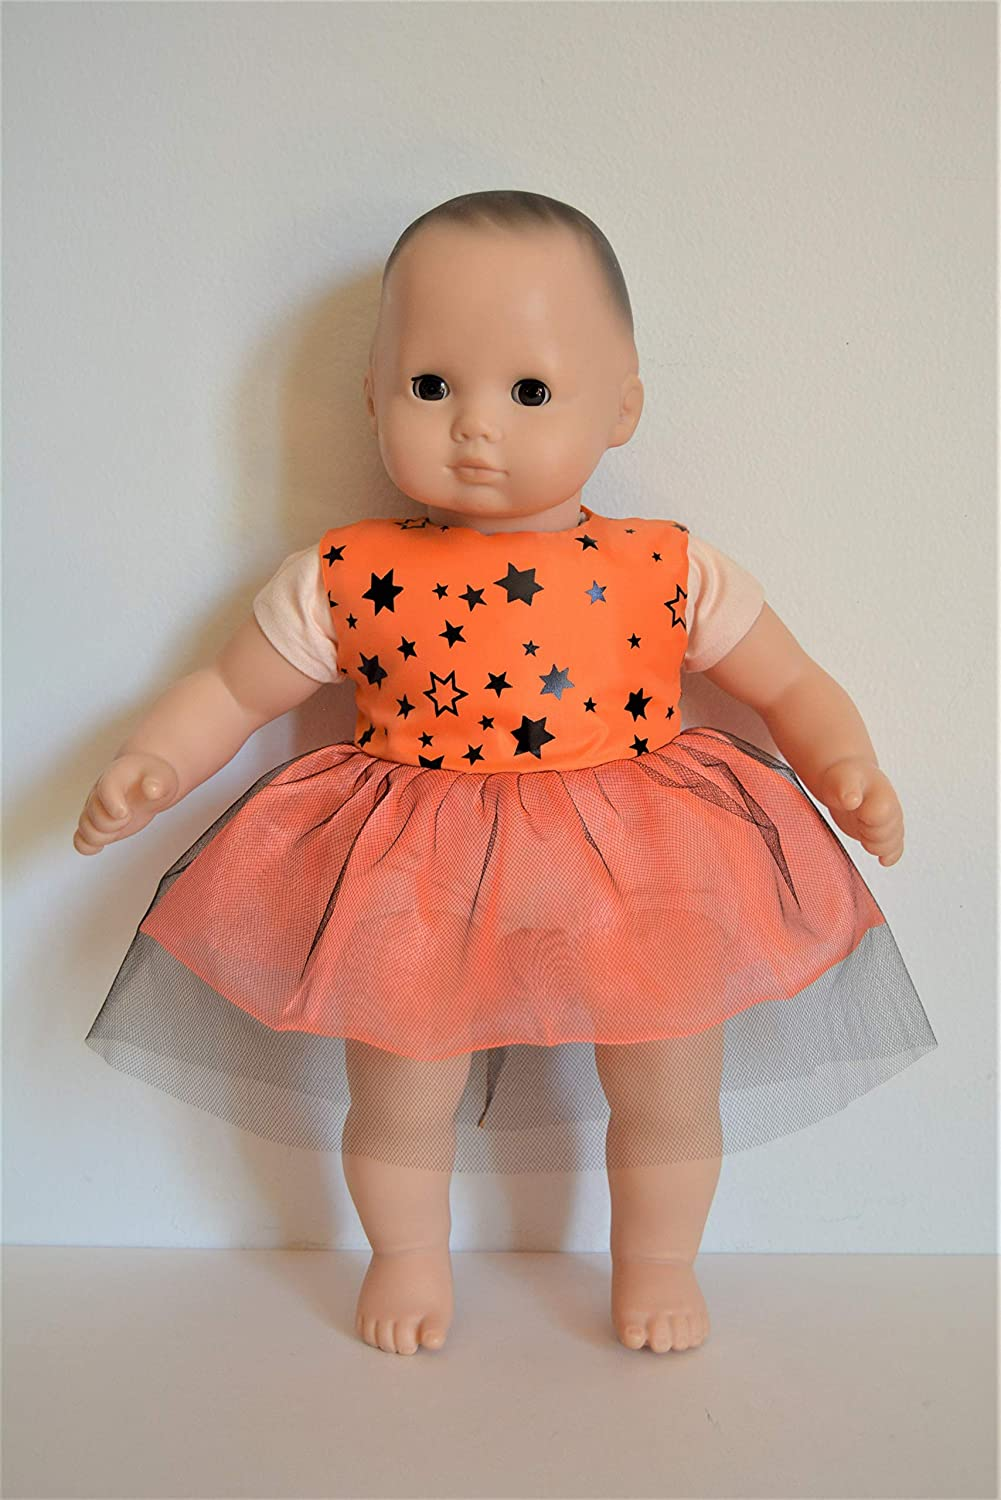 Handmade Doll Clothes Dress fit 15 Amerian Girl Bitty Baby Dolls Handcraft Voile